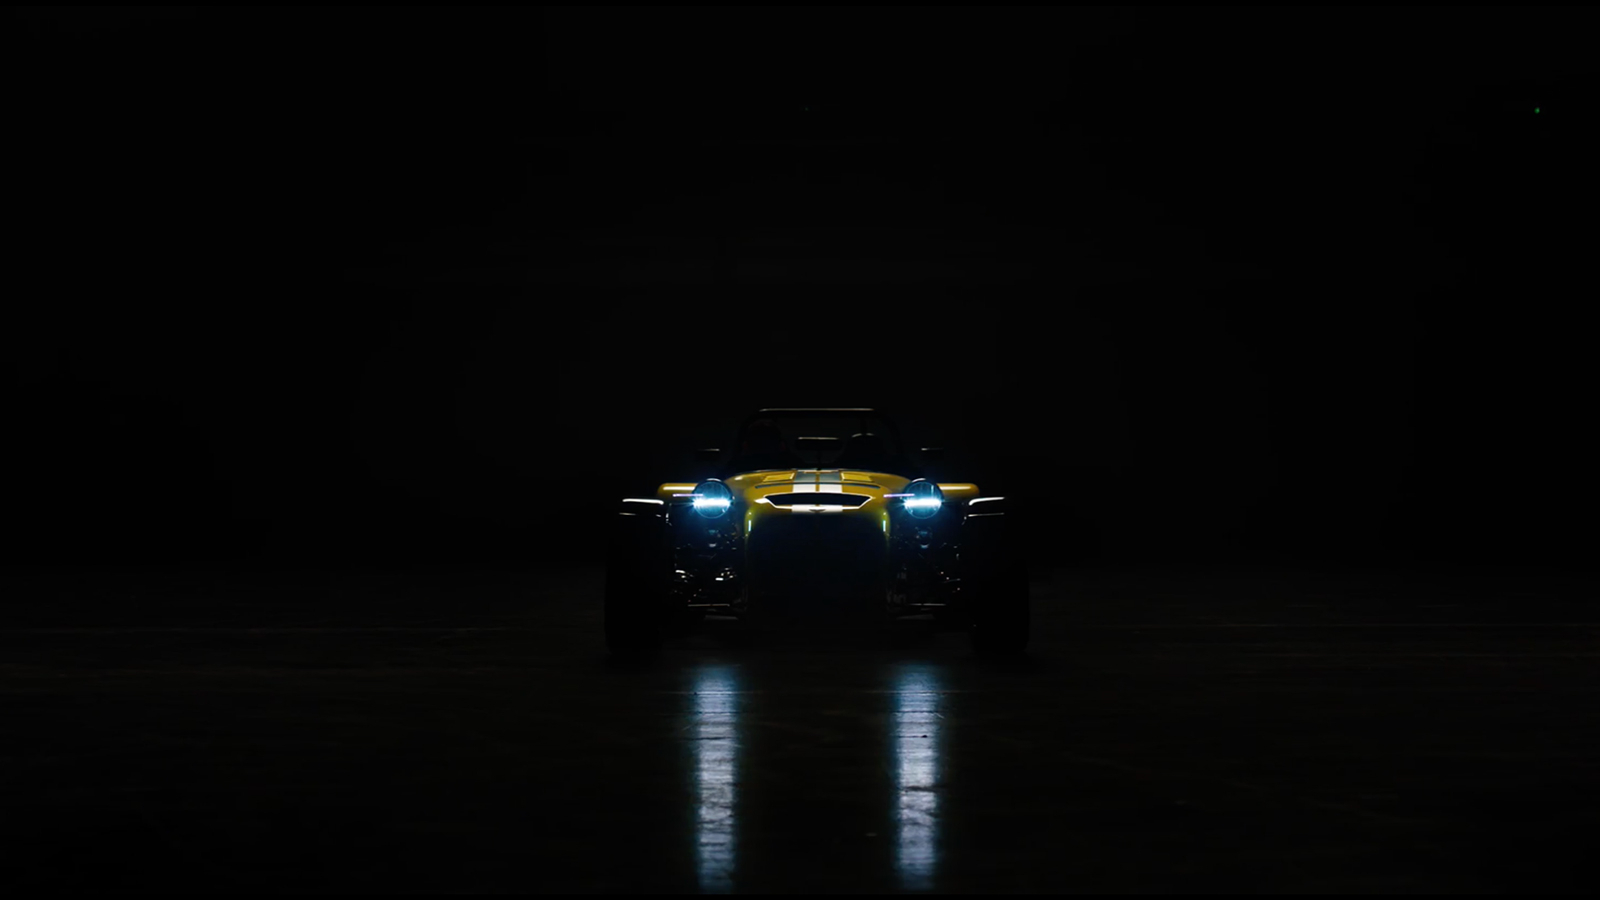 CATERHAM GIVES TECHNOLOGY THE MIDDLE FINGER IN CAR MAKER'S FIRST BRAND FILM